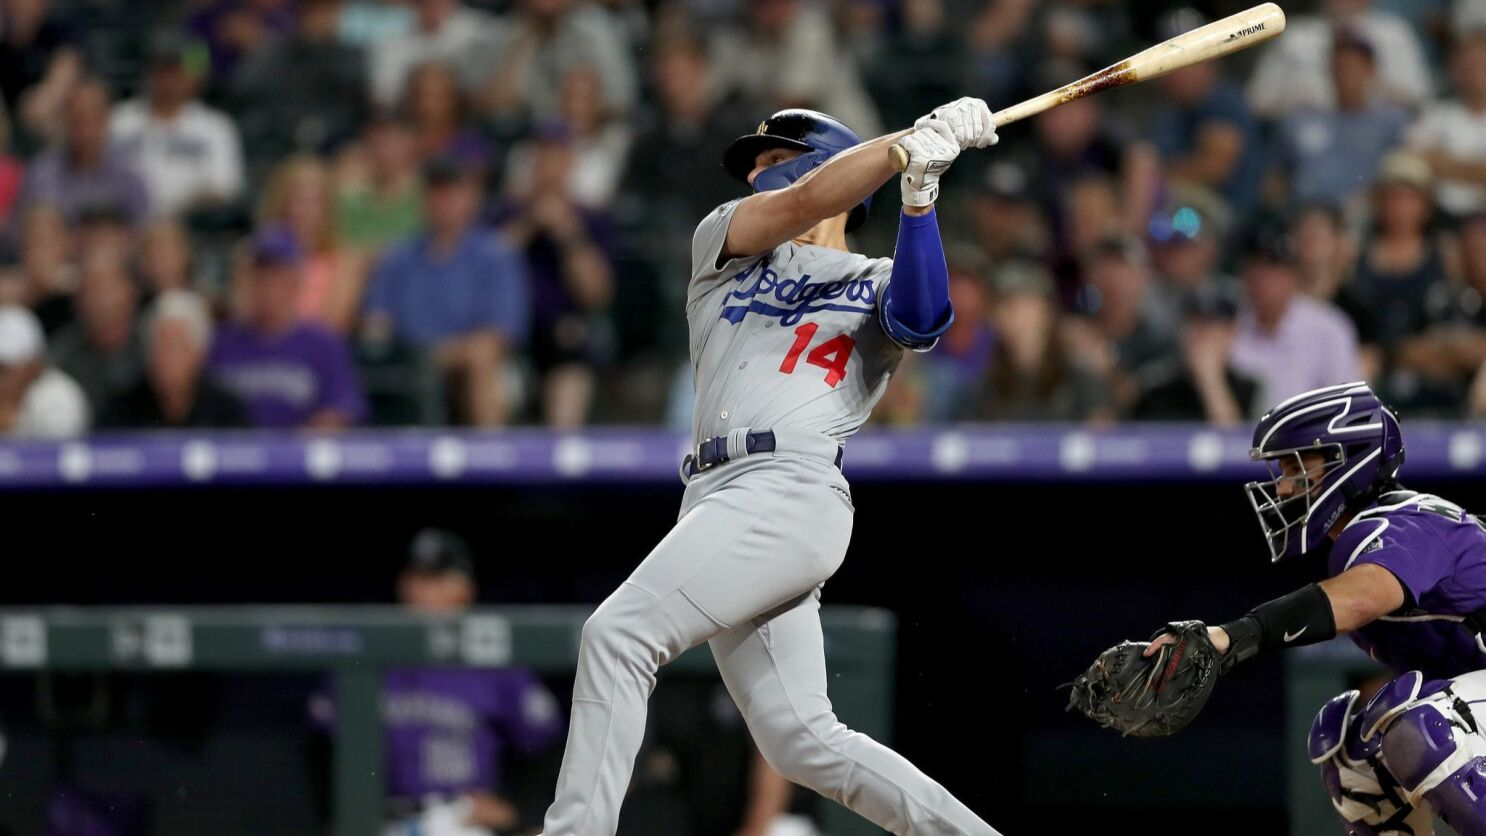 The Sports Report: The Dodgers do it again